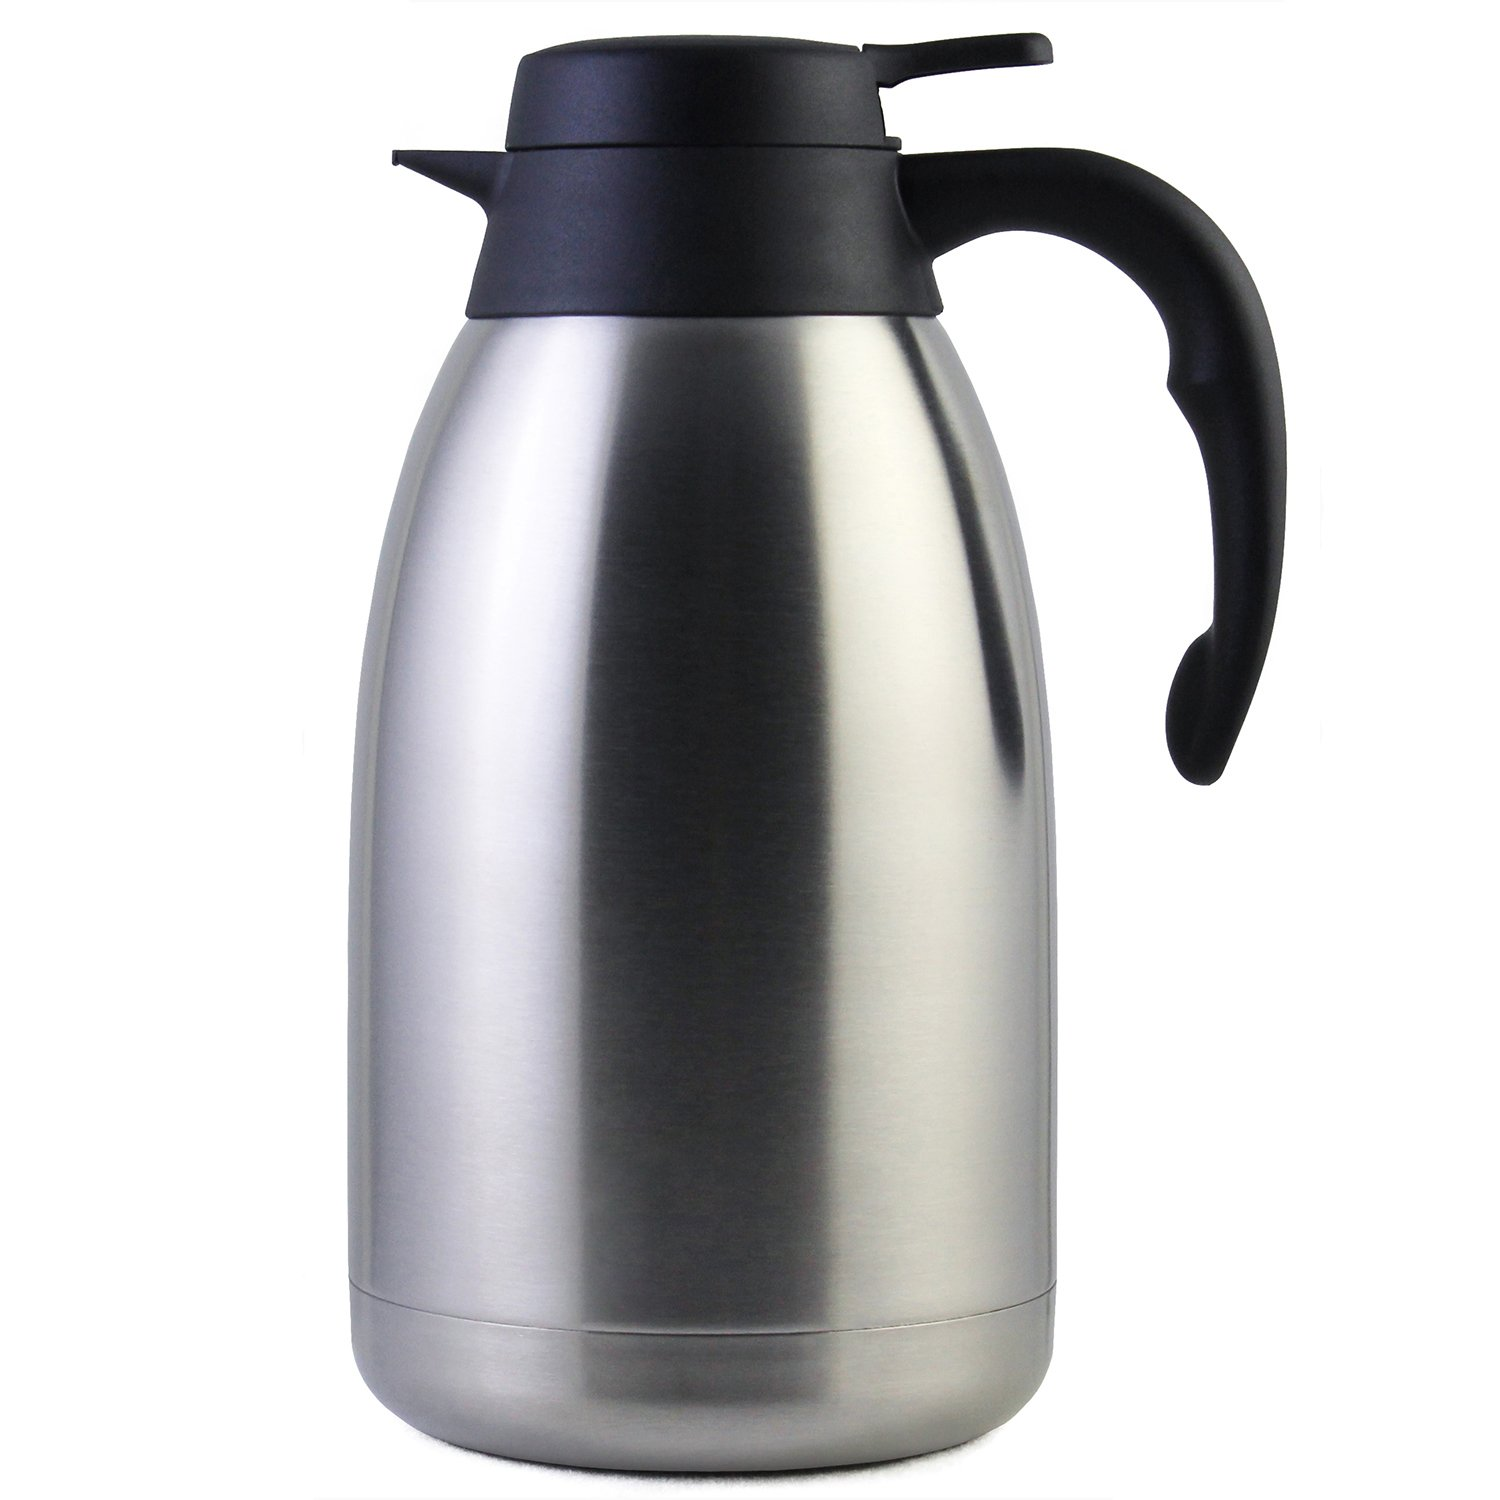 2 Litre Coffee Thermal Carafe by Cresimo